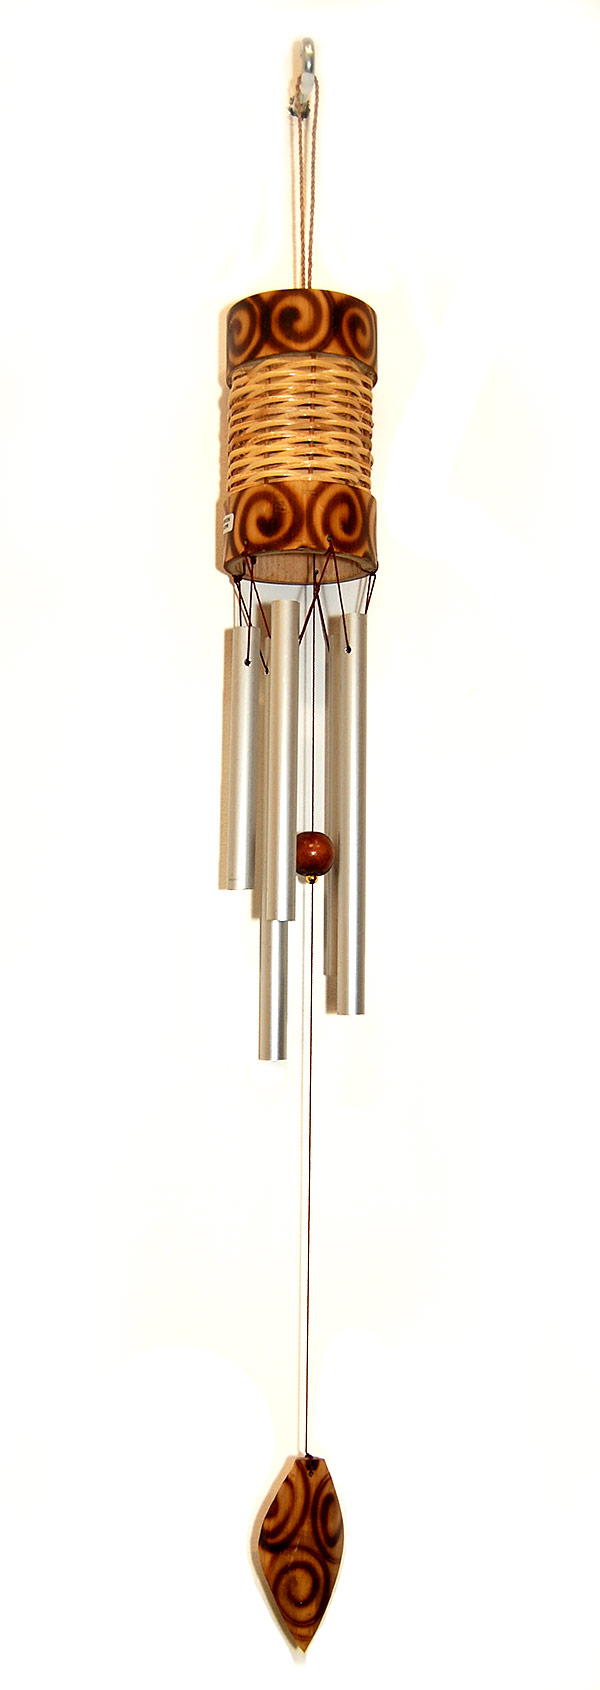 Handmade Wind Chime